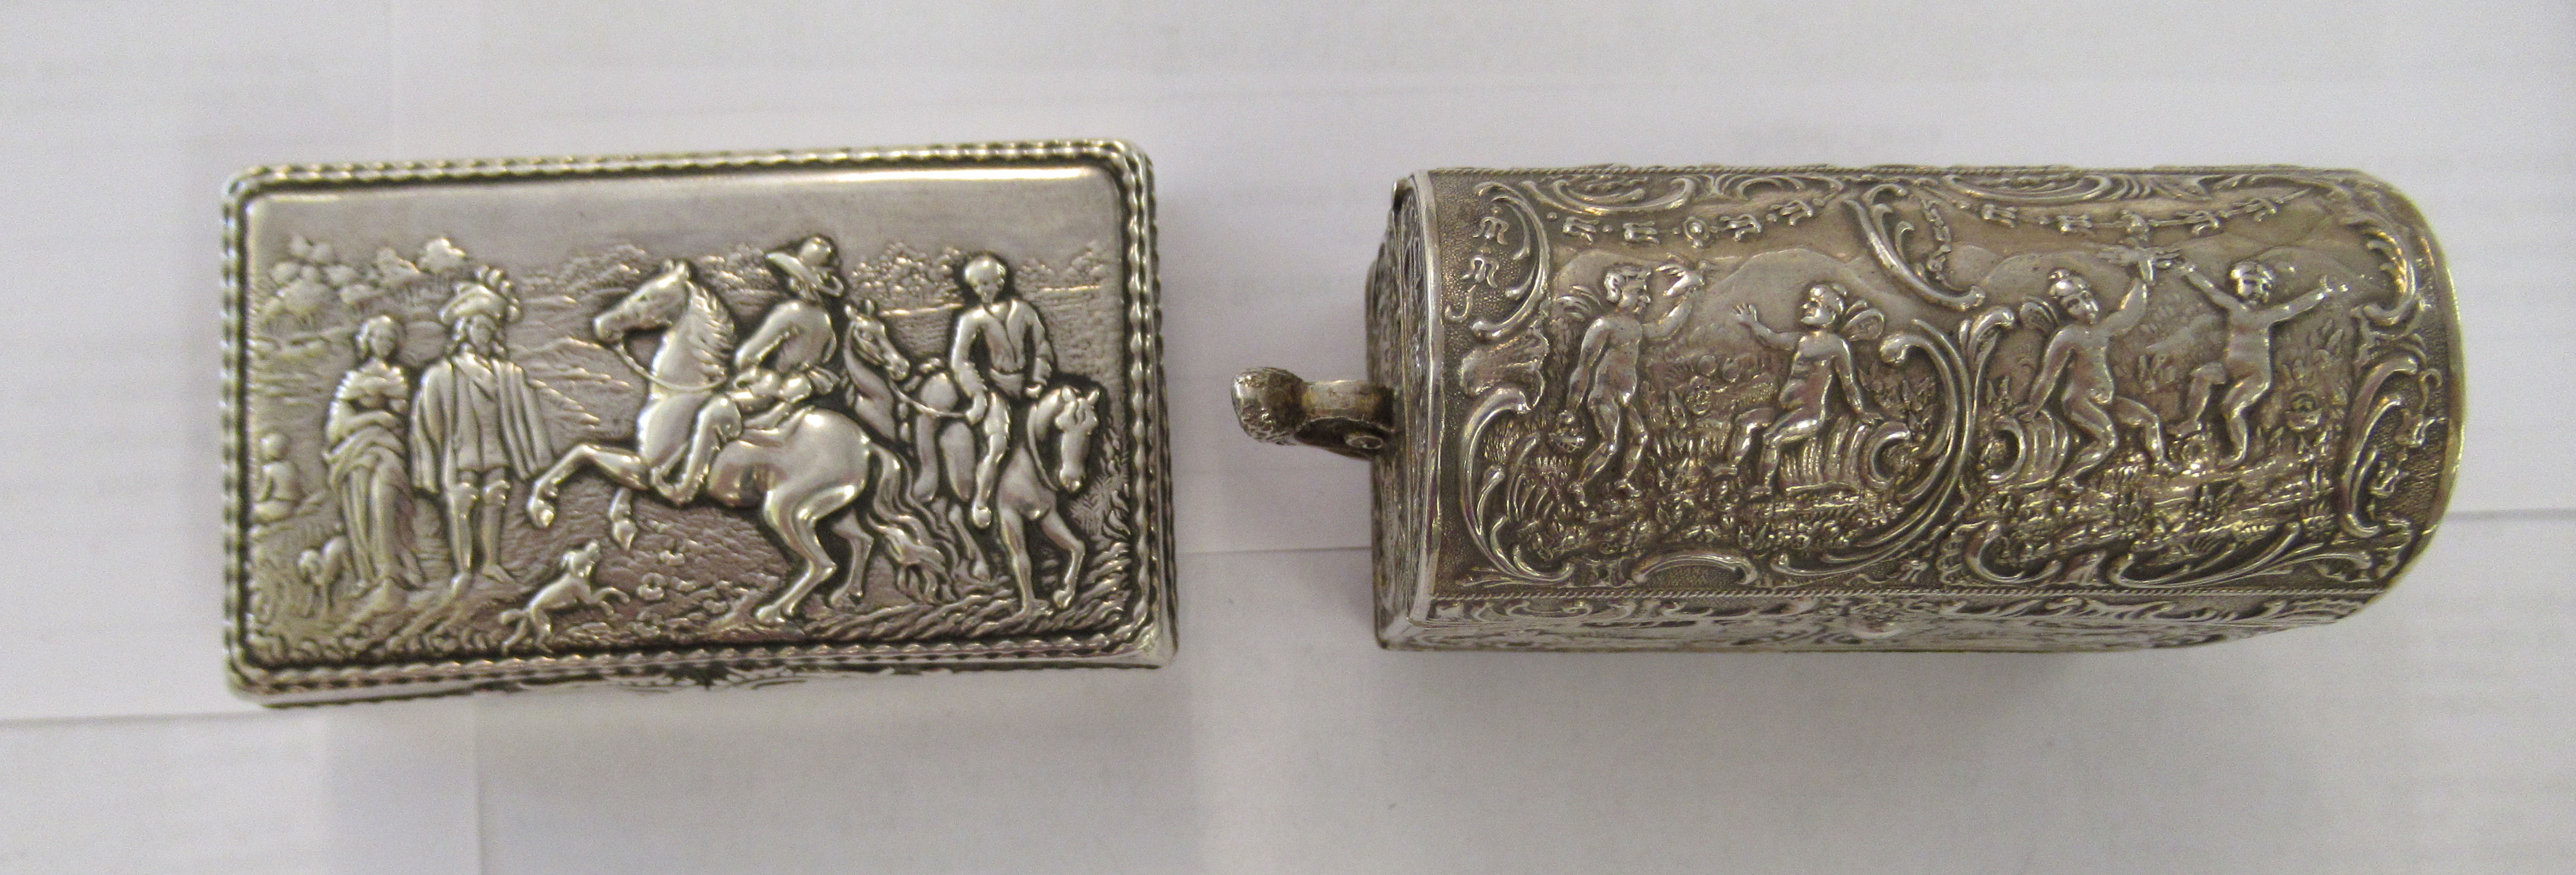 Two early 20thC Continental silver coloured metal items, viz. a domed twin handled, casket deign - Image 4 of 5